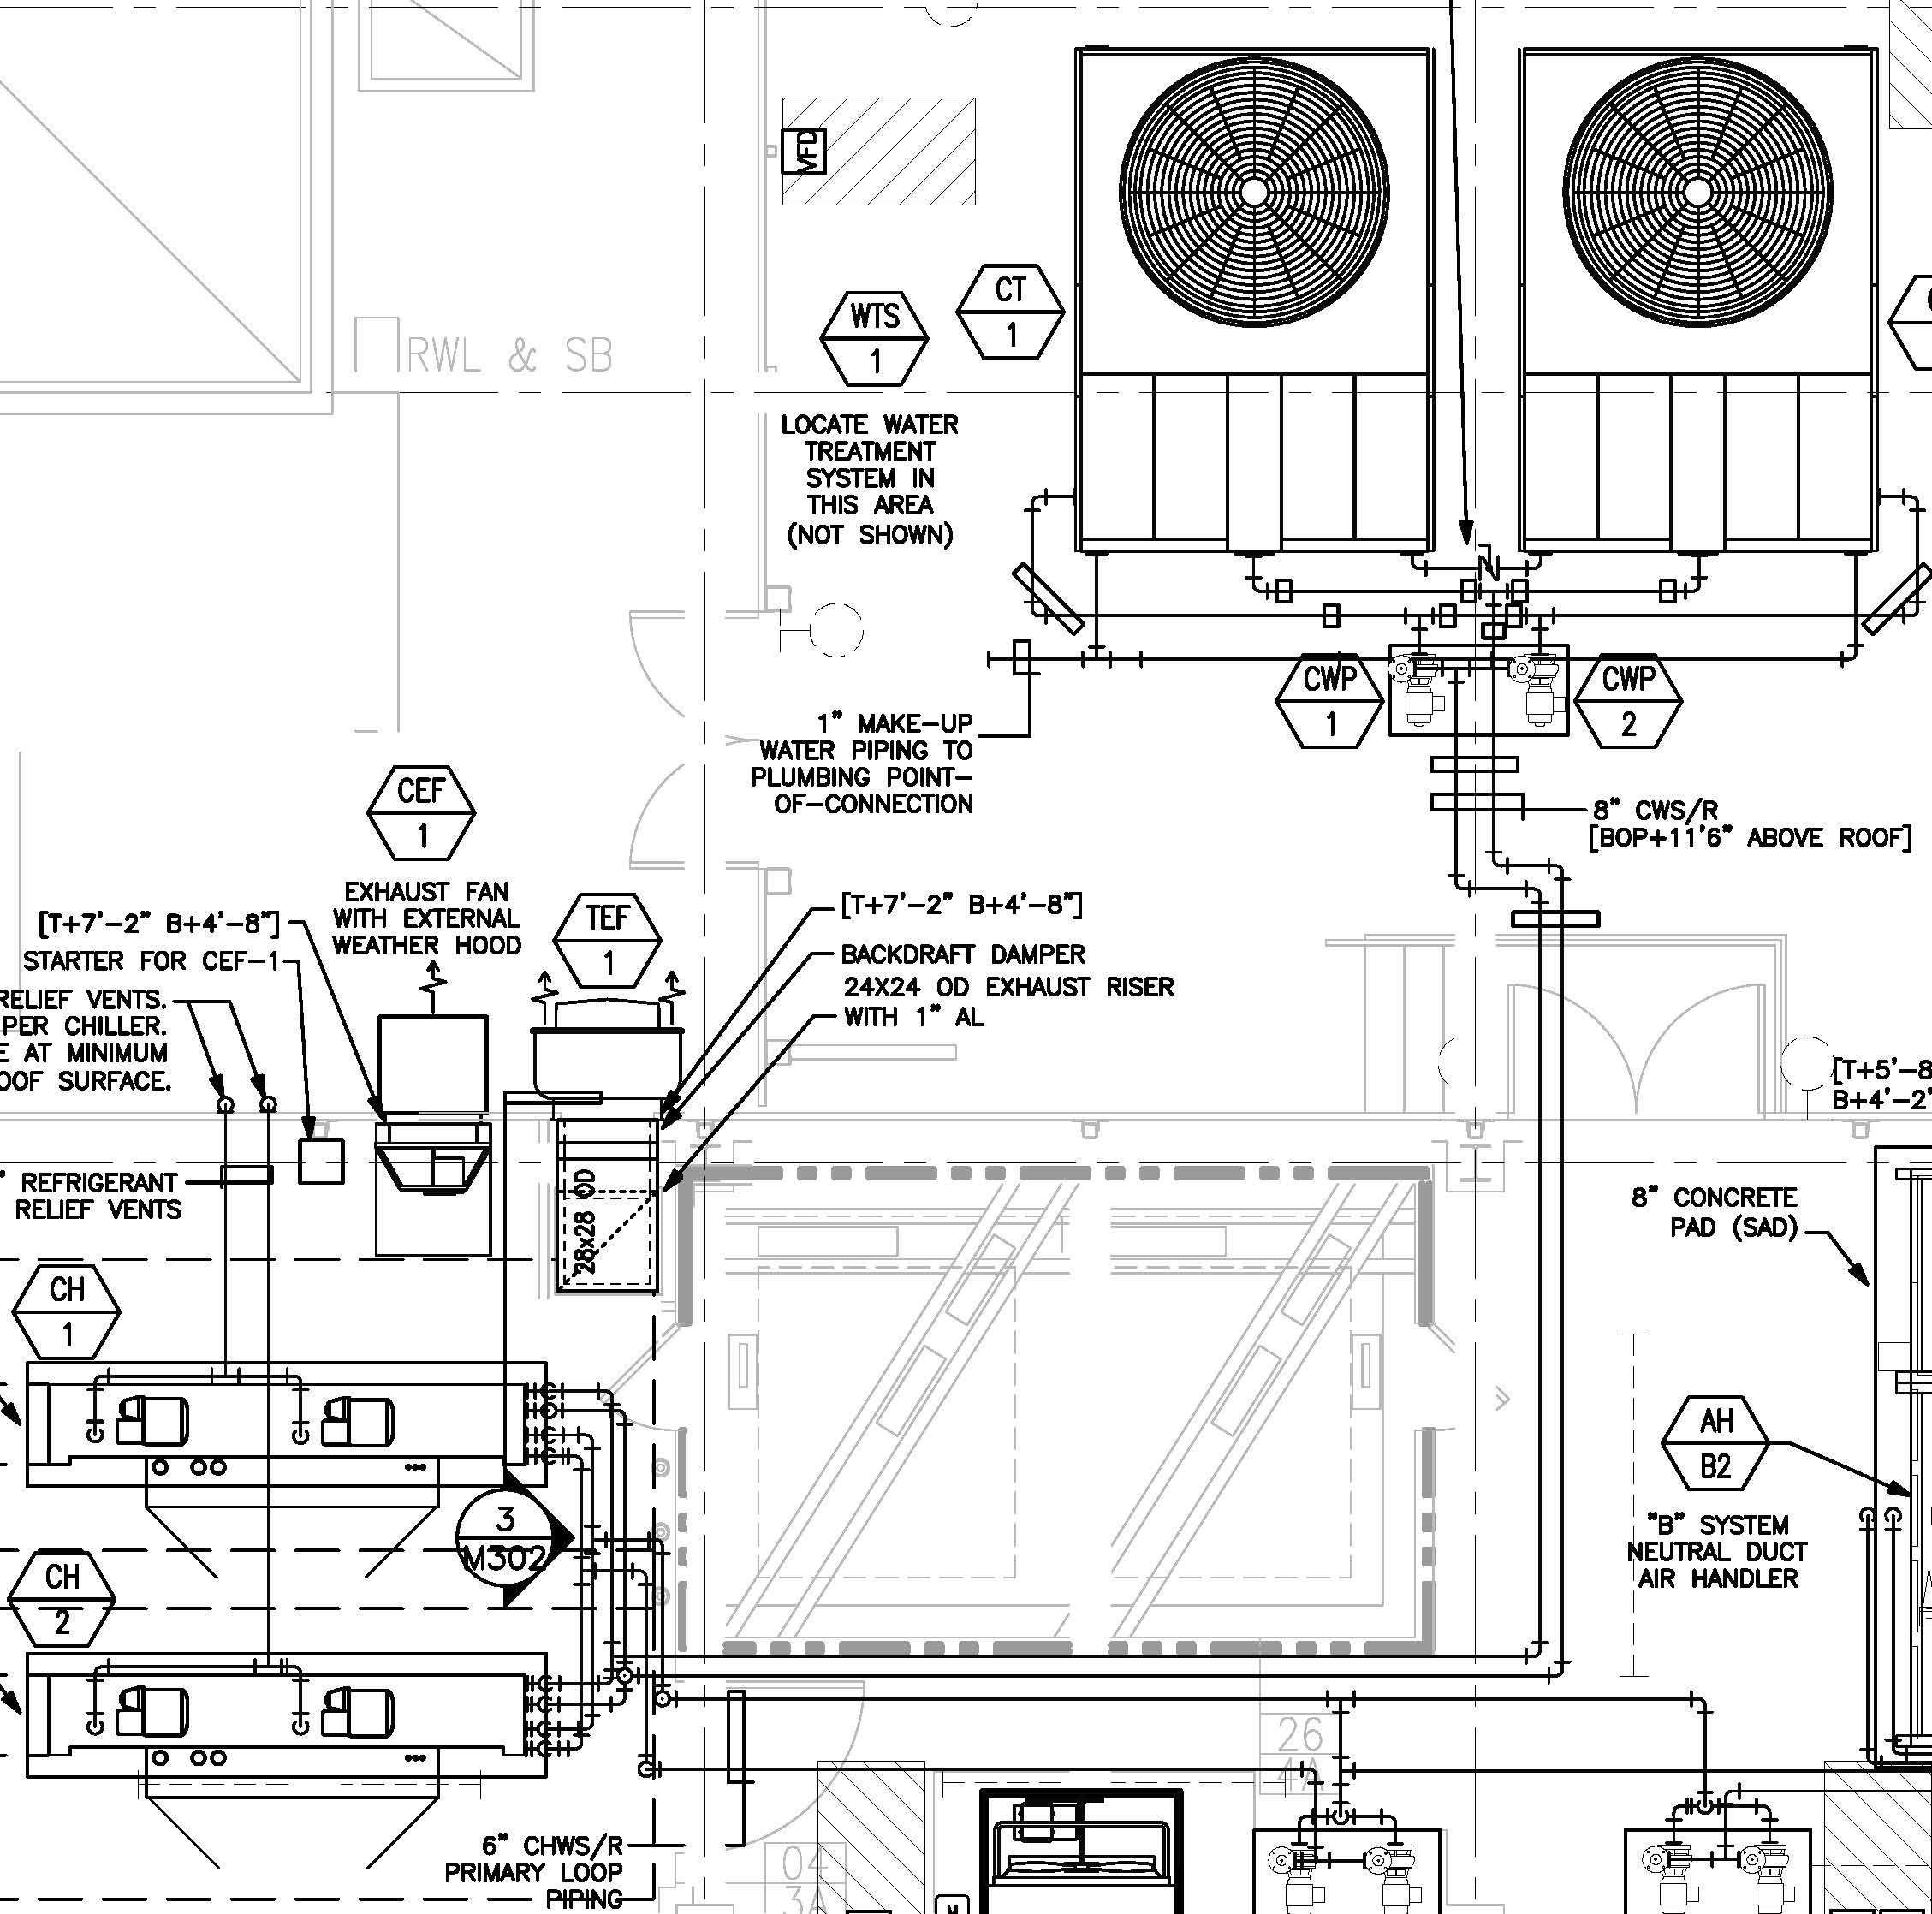 Break Away Systems Wiring Diagram Food Truck Water System Diagram Well Pump House Plans and System Of Break Away Systems Wiring Diagram